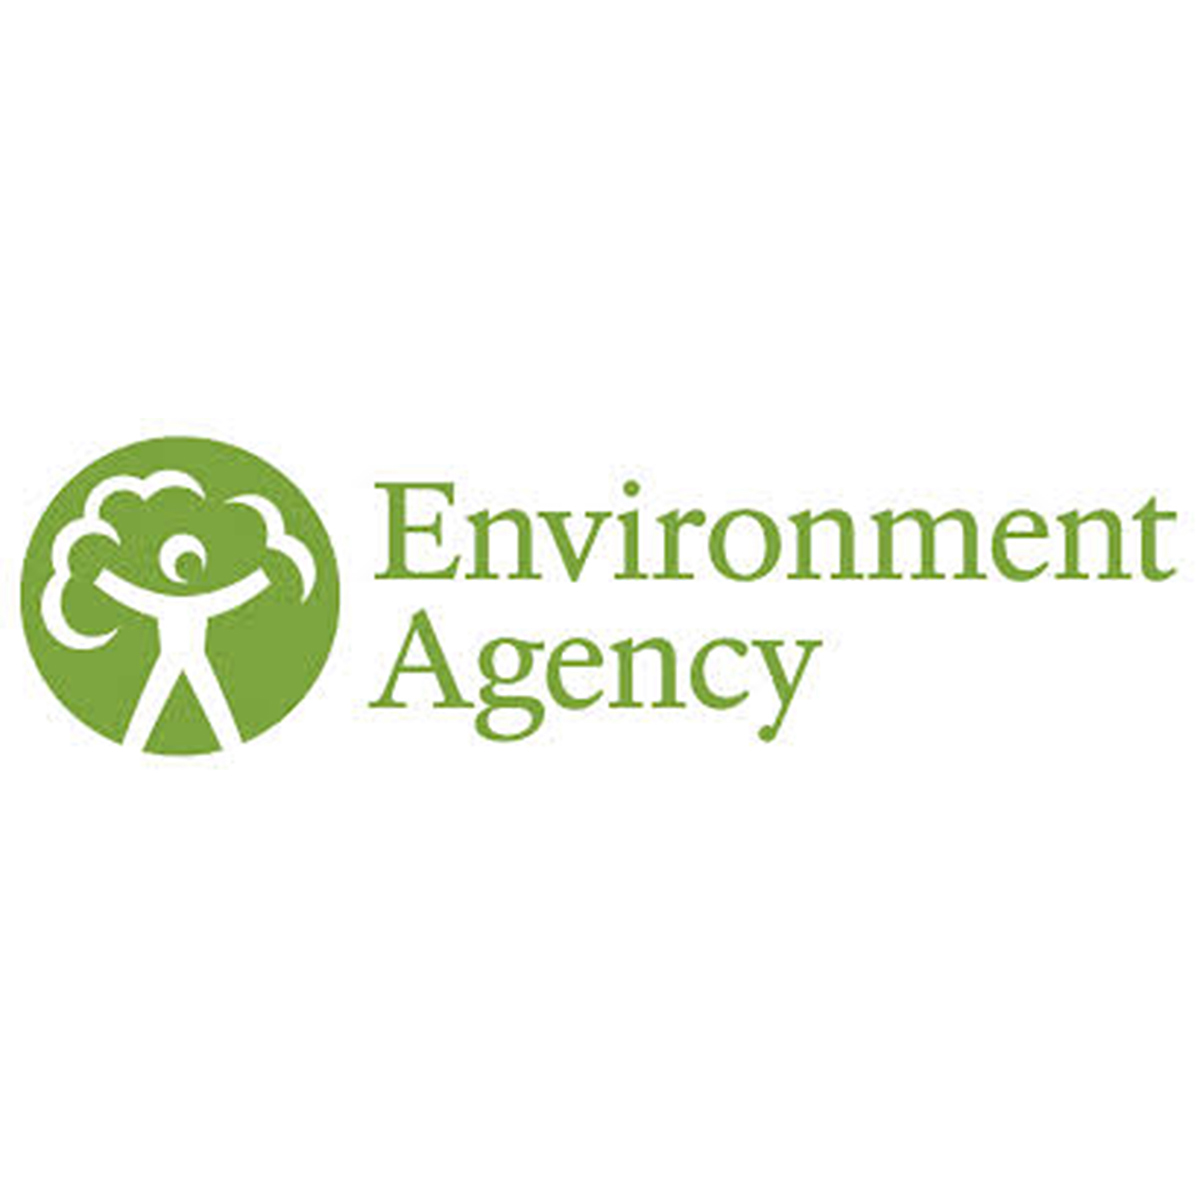 The Environment Agency is seeking planning permission for the scheme